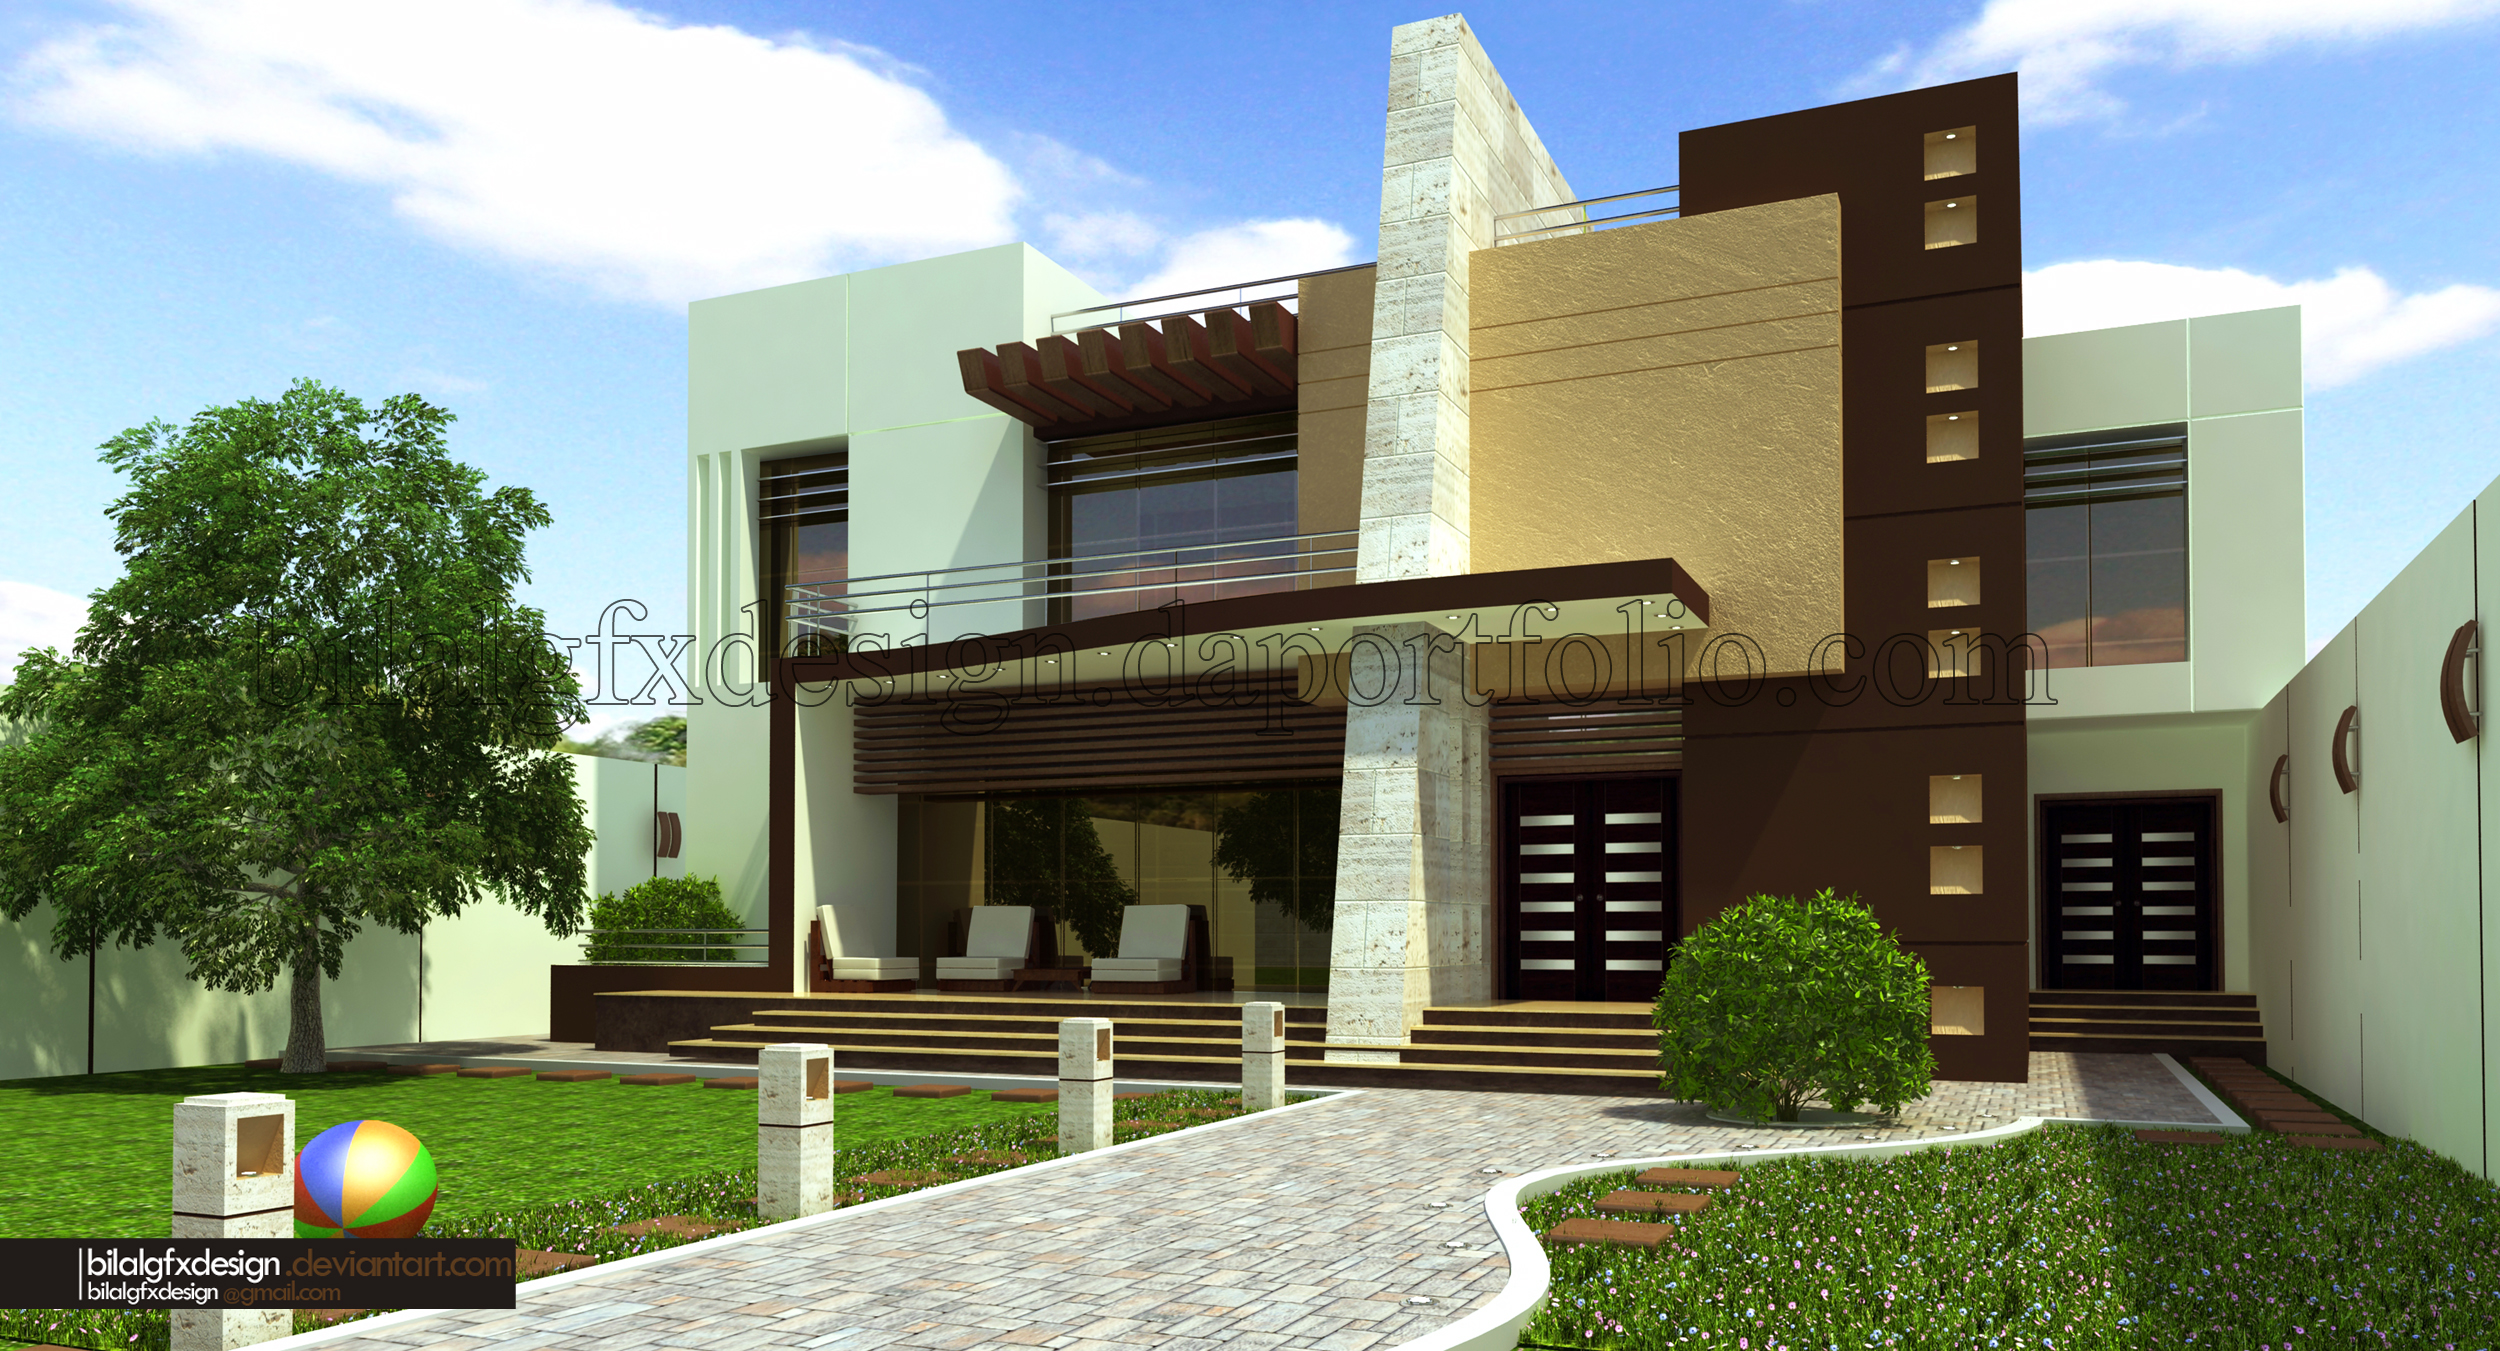 Modern villa 1 by bilalgfxdesign on deviantart for Villa moderne design